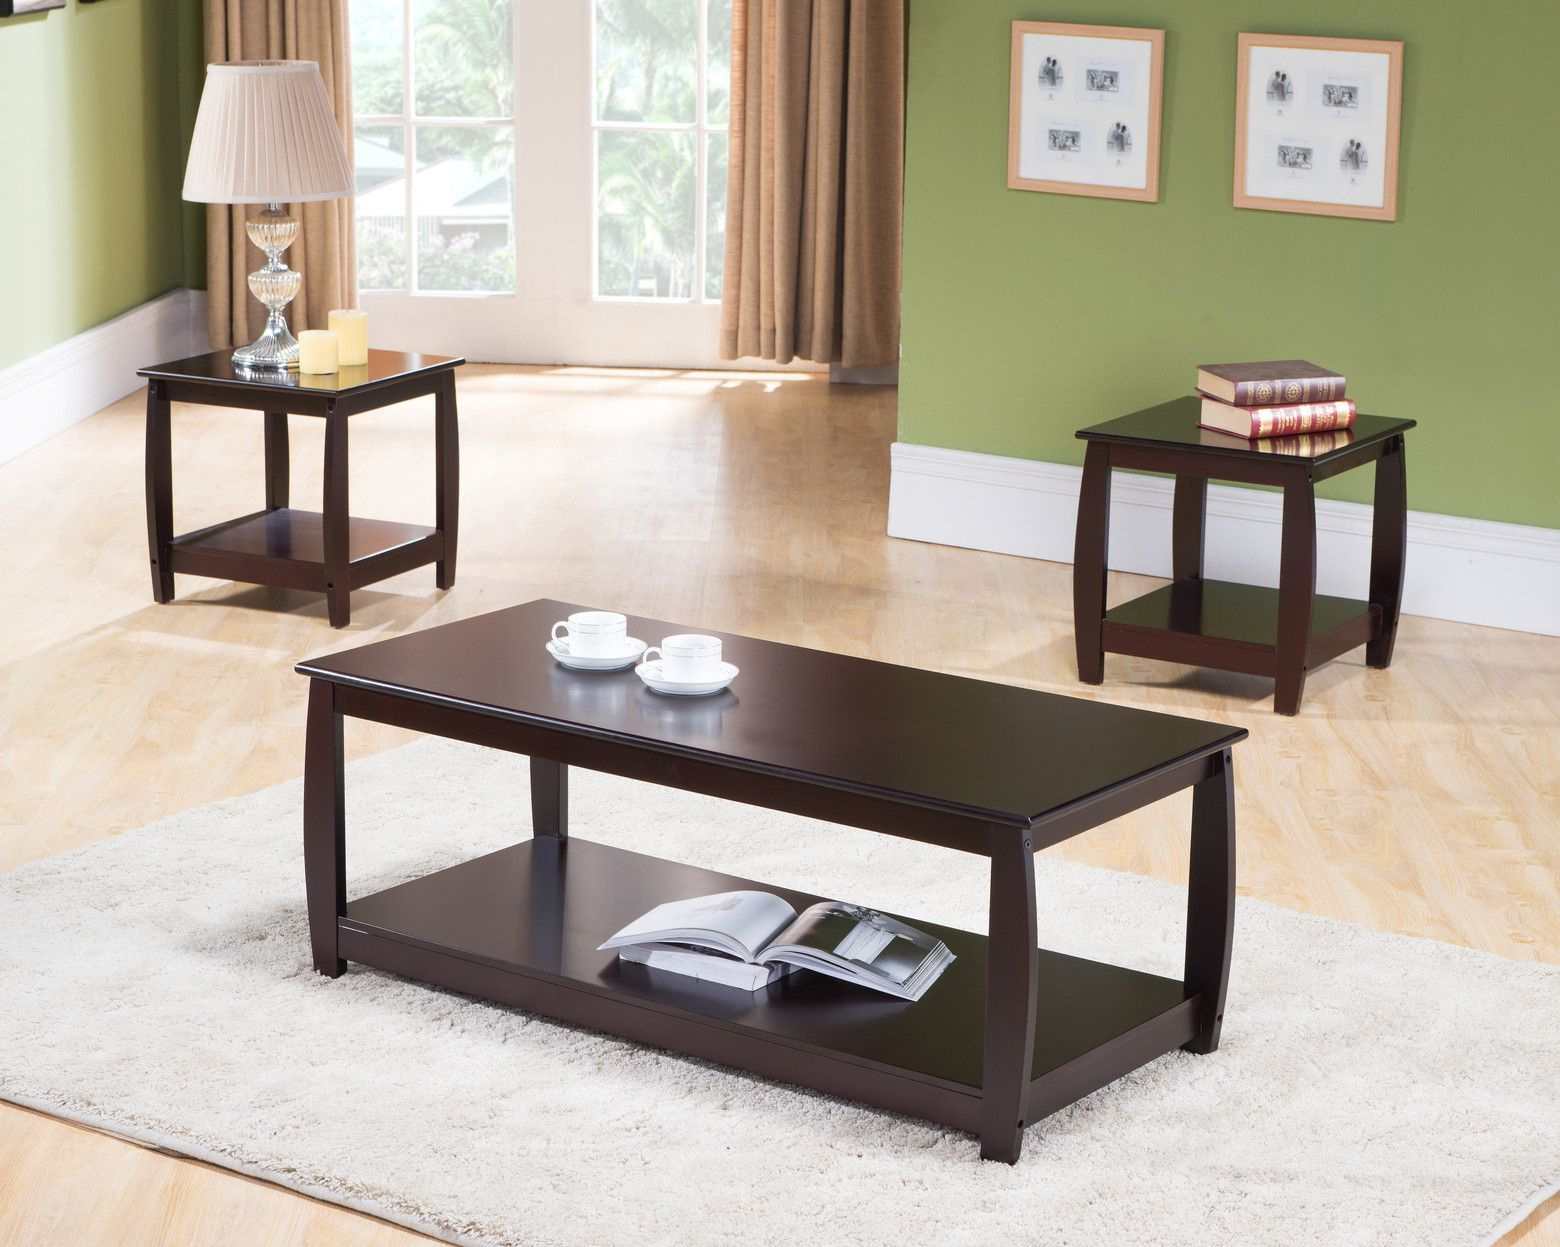 3 Piece Dark Cherry Wood Occasional Cocktail Coffee & 2 End Tables